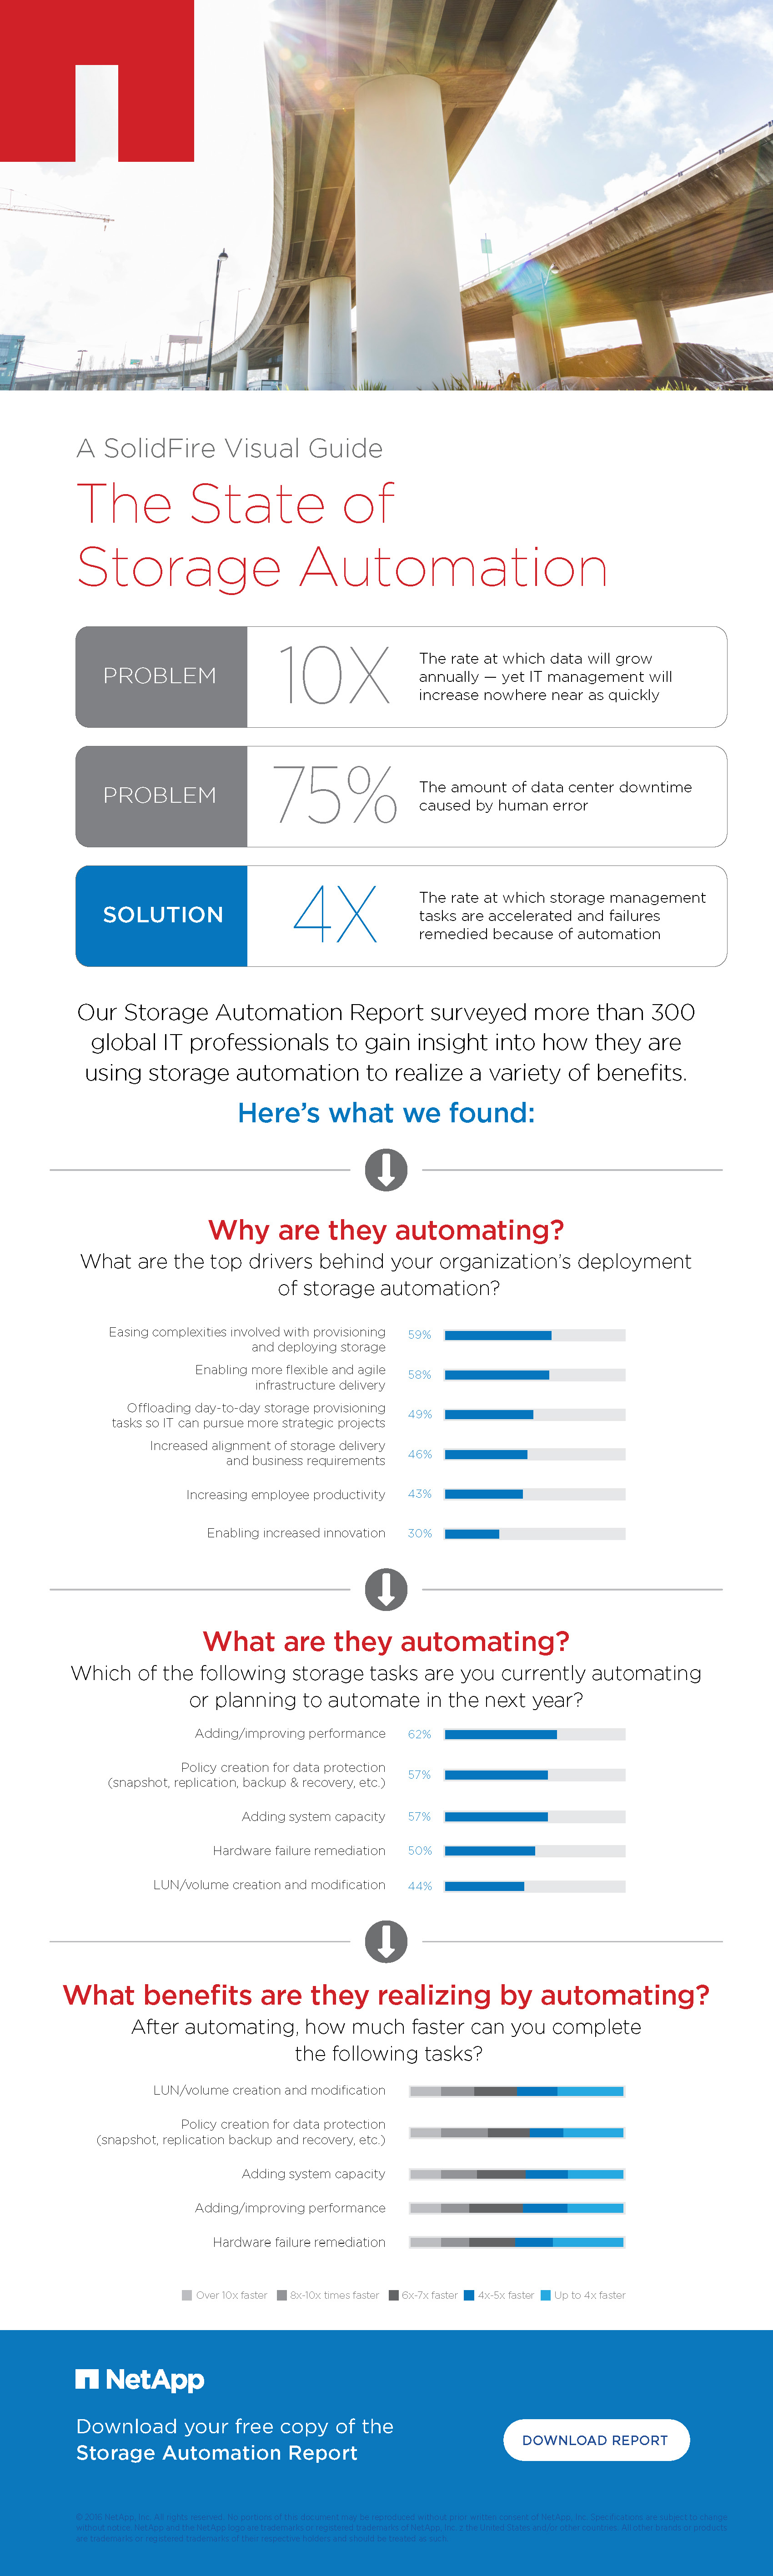 r3b_NA_SolidFire-Infographic-Automation-Report_060716.jpg